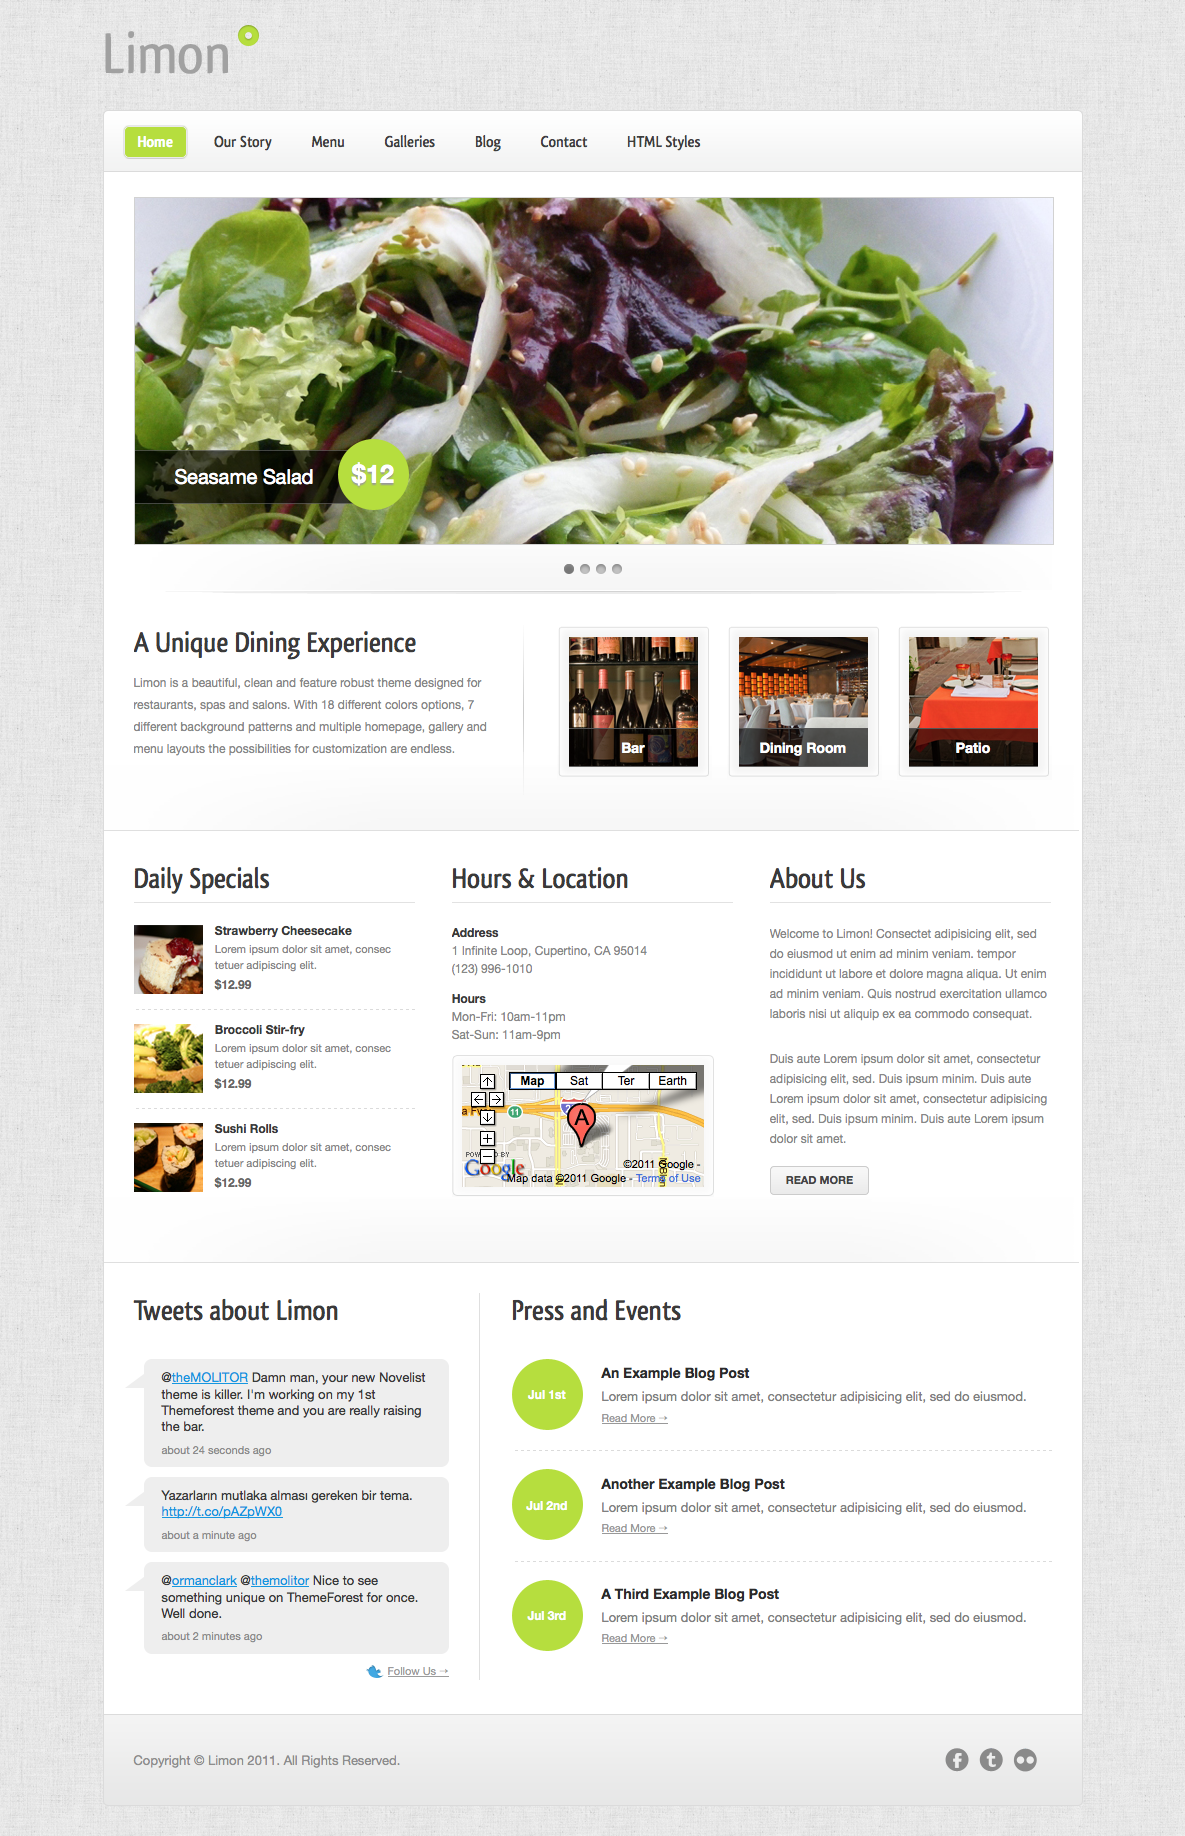 http://0.s3.envato.com/files/6997993/LimonScreenshots/02_Homepage.png